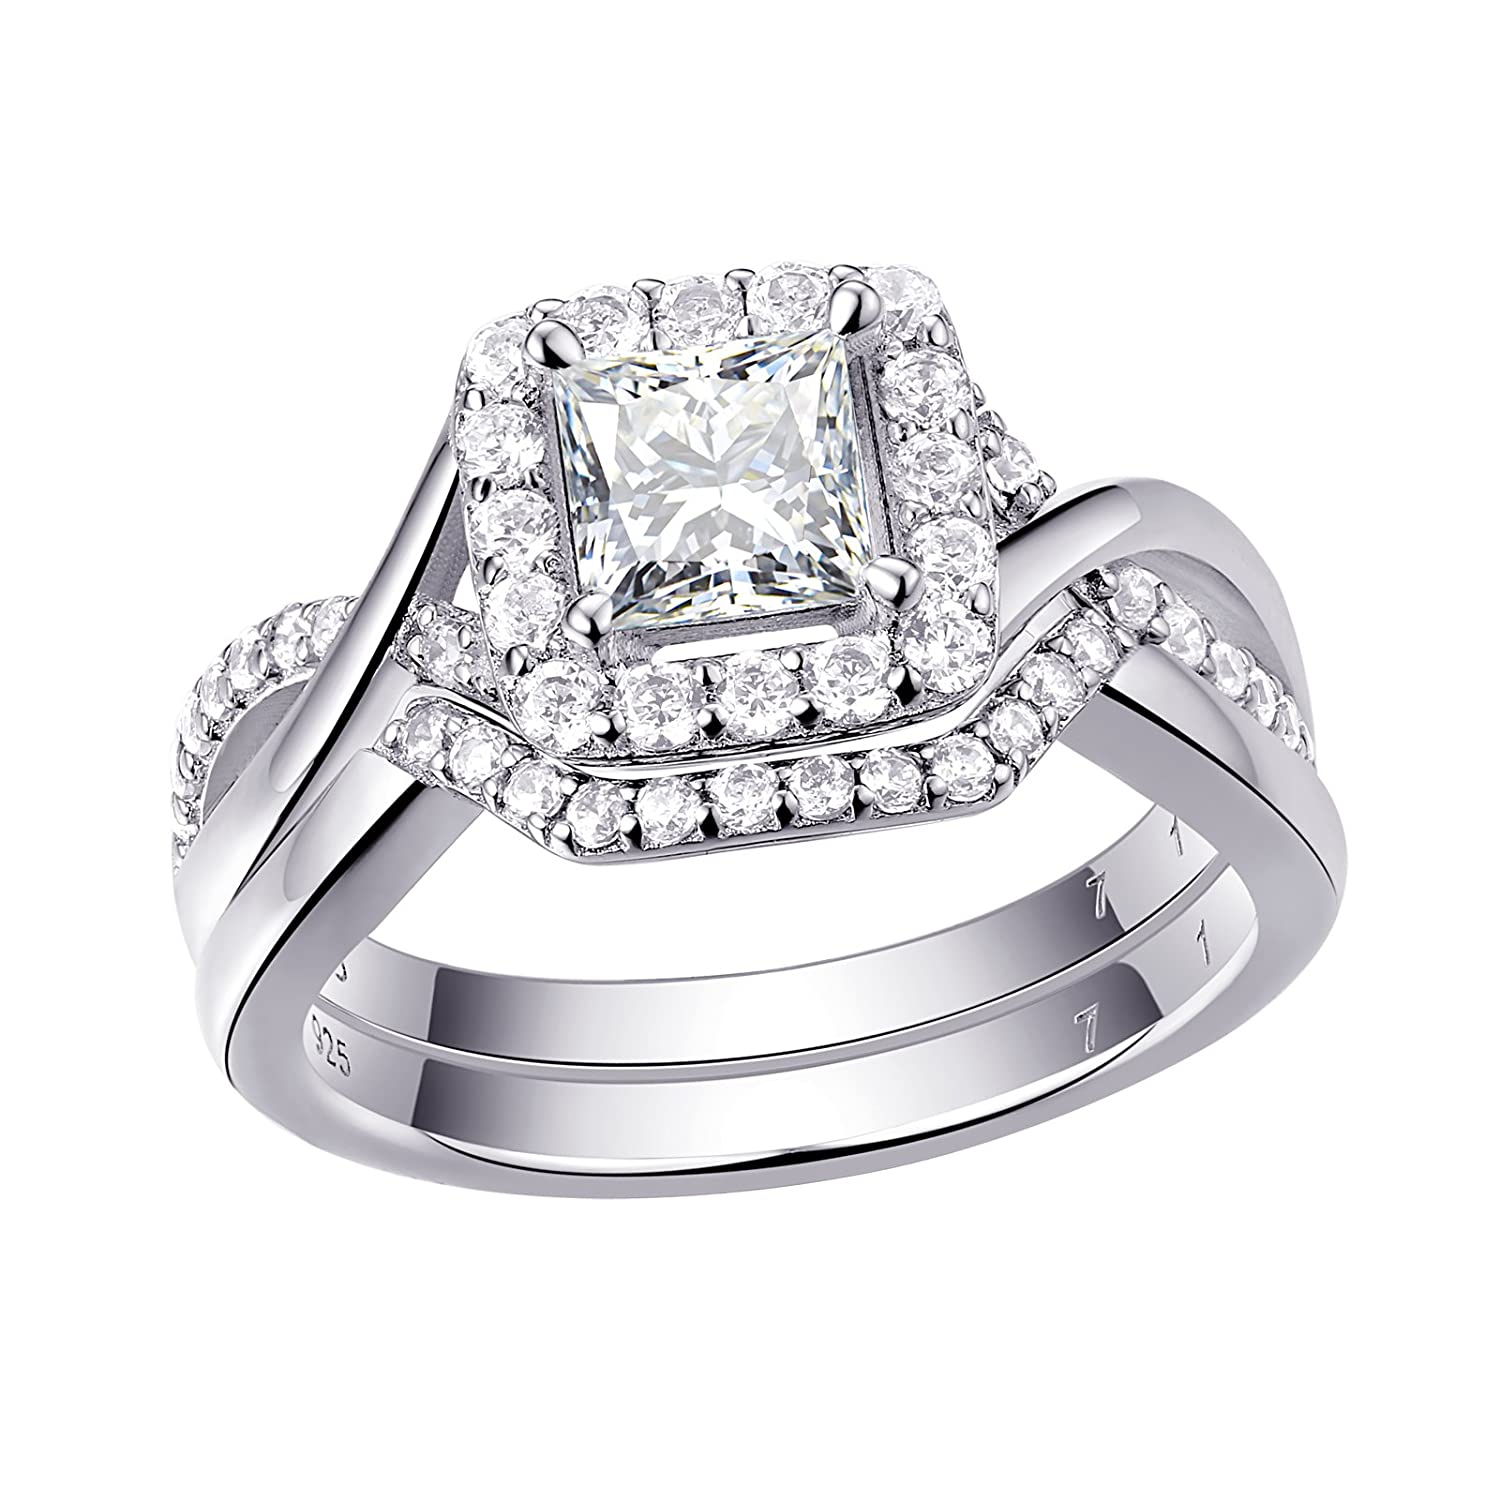 Newshe Woman 0.9ct Princess White AAA Cz 925 Sterling Silver Wedding Engagement Ring Set Size 5-10 Newshe Jewellery 1R0005_SS